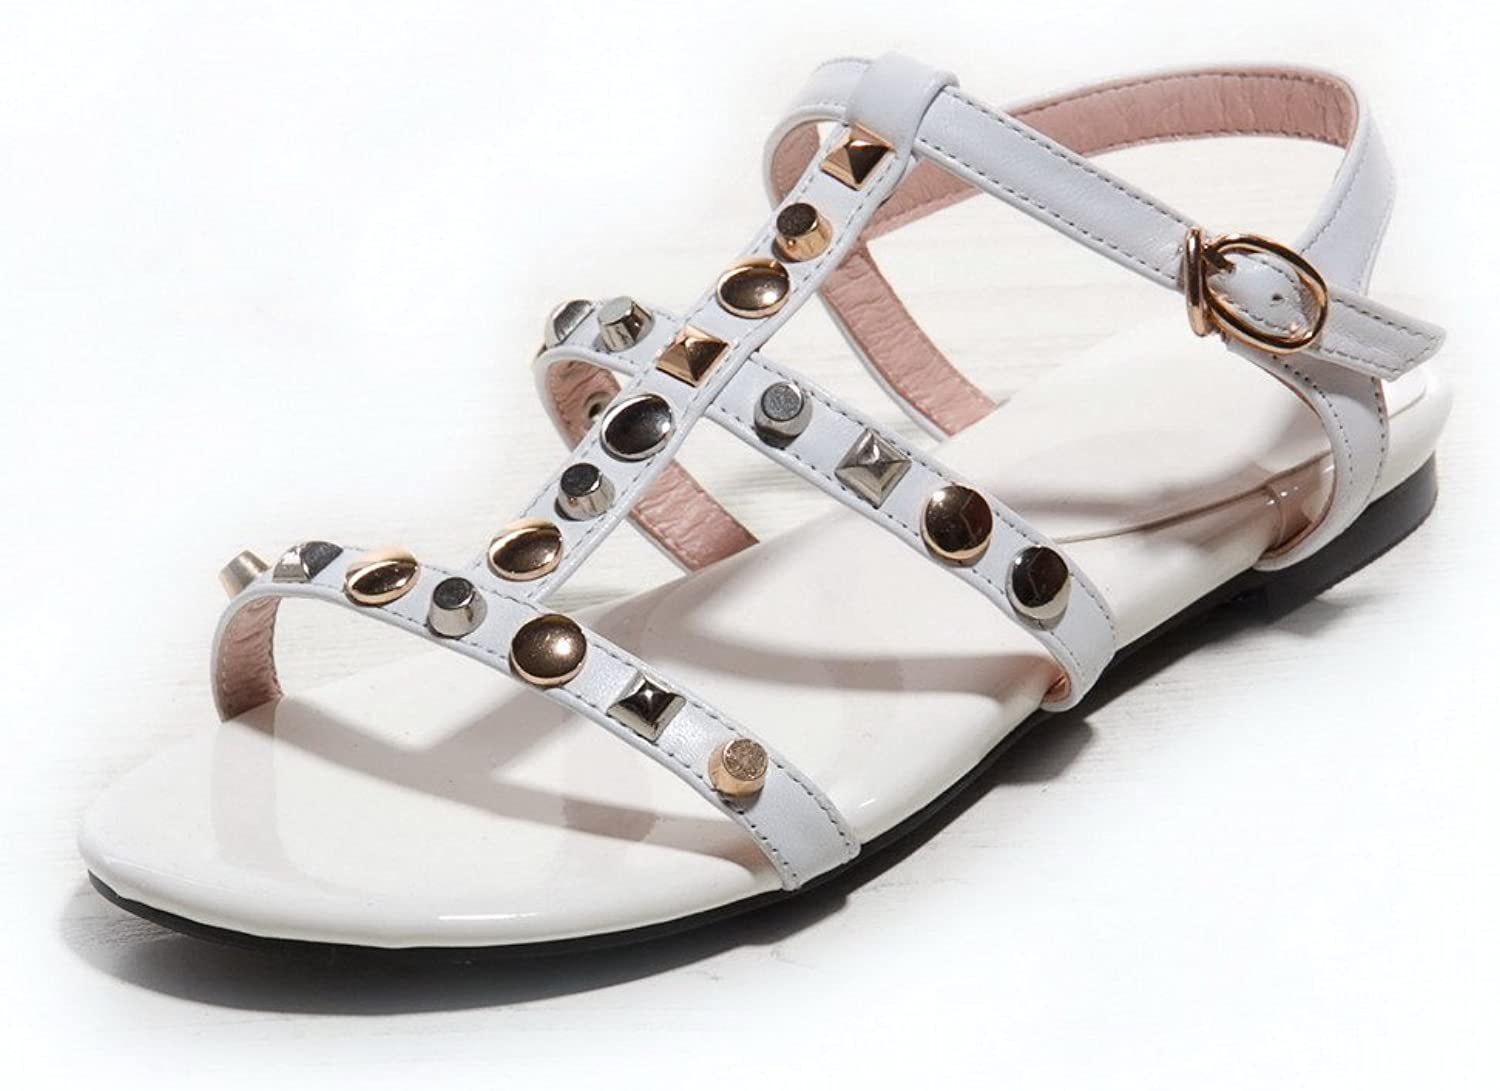 AmoonyFashion Women's Buckle Open Toe No Heel Cow Leather Solid Sandals